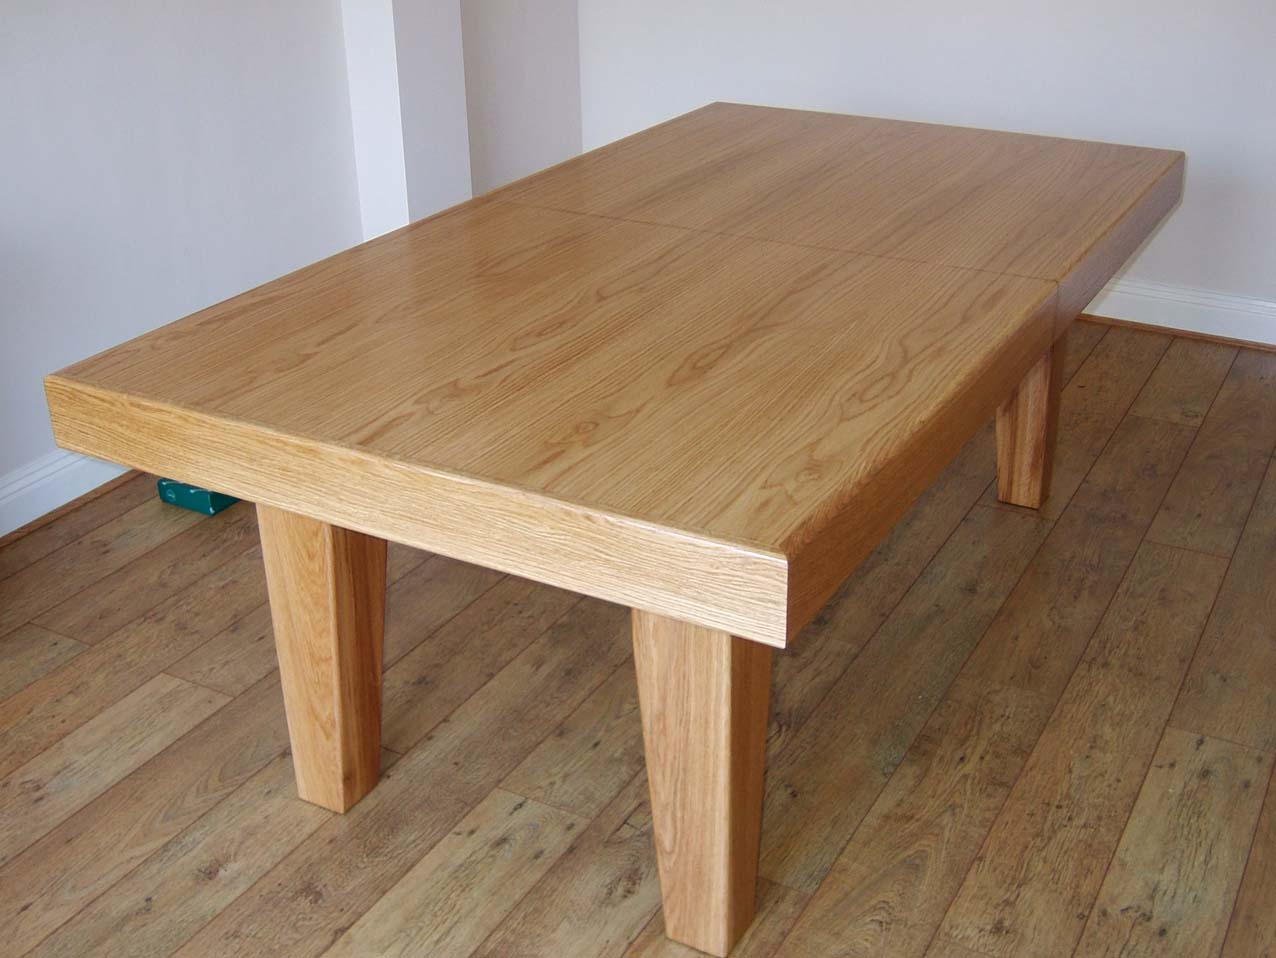 6ft snooker dining table made of oak with green cloth cover